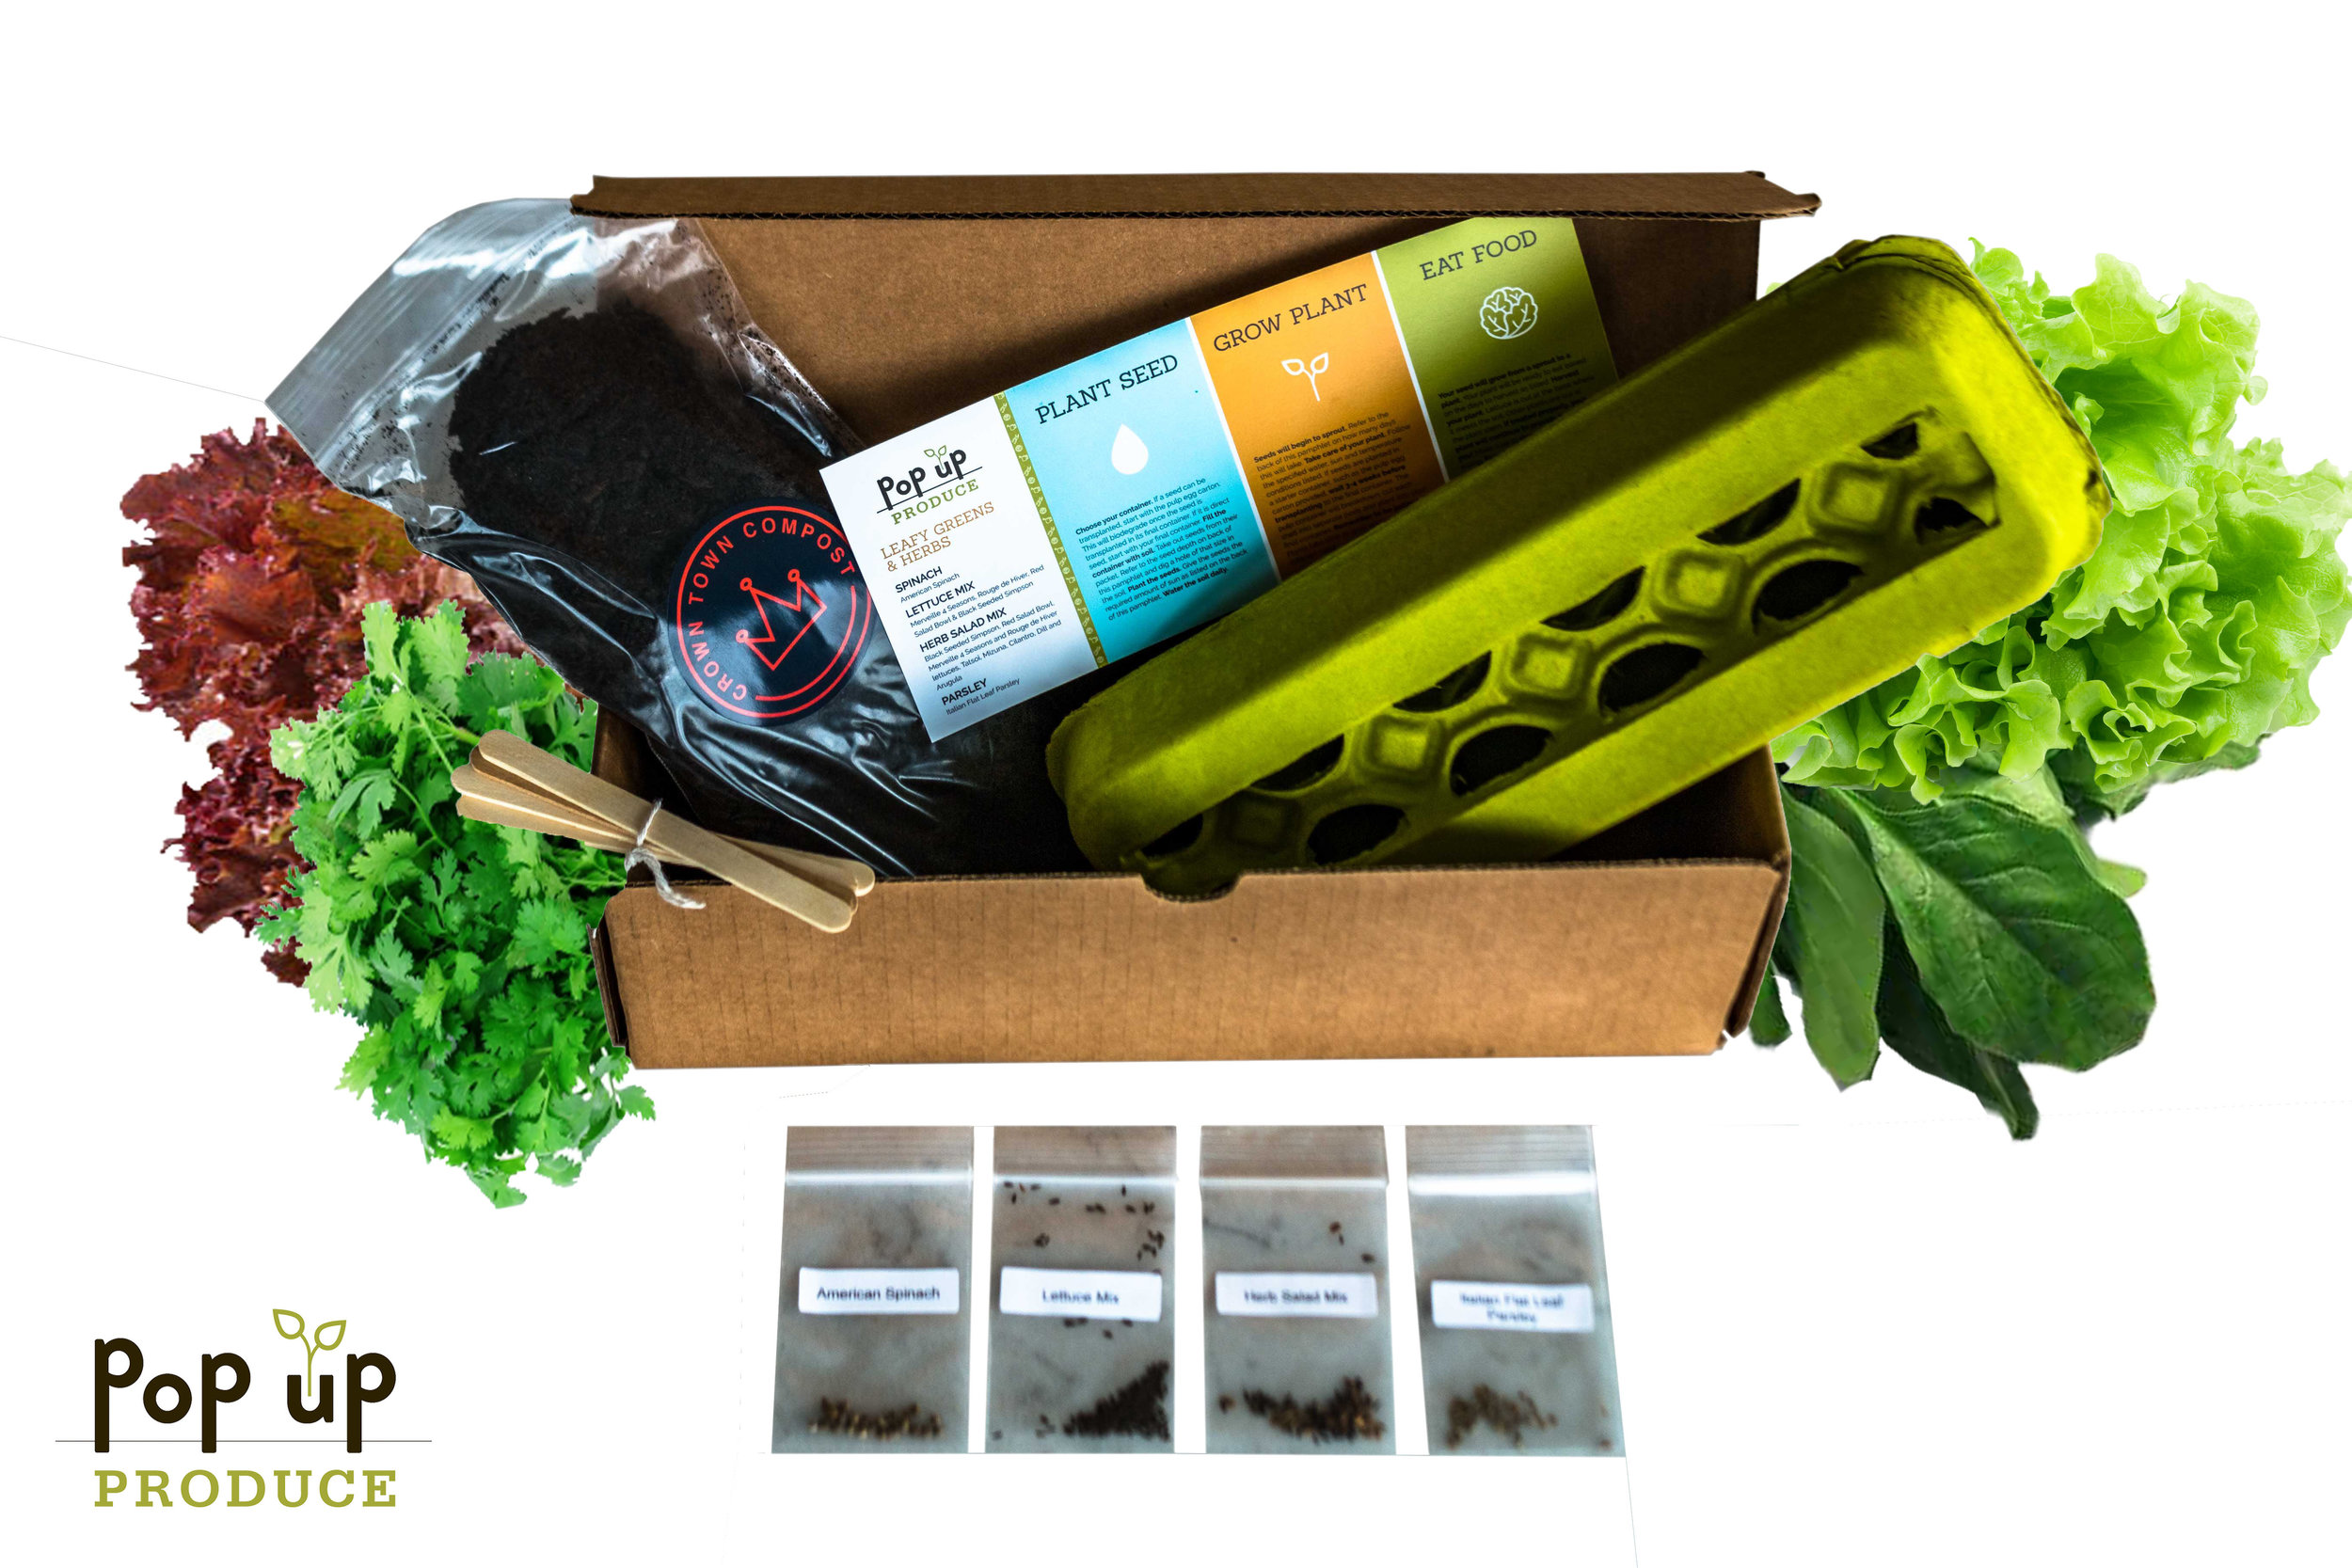 Pop Up Produce Product Shots for Web Leafy Greens and Herbs (1).jpg